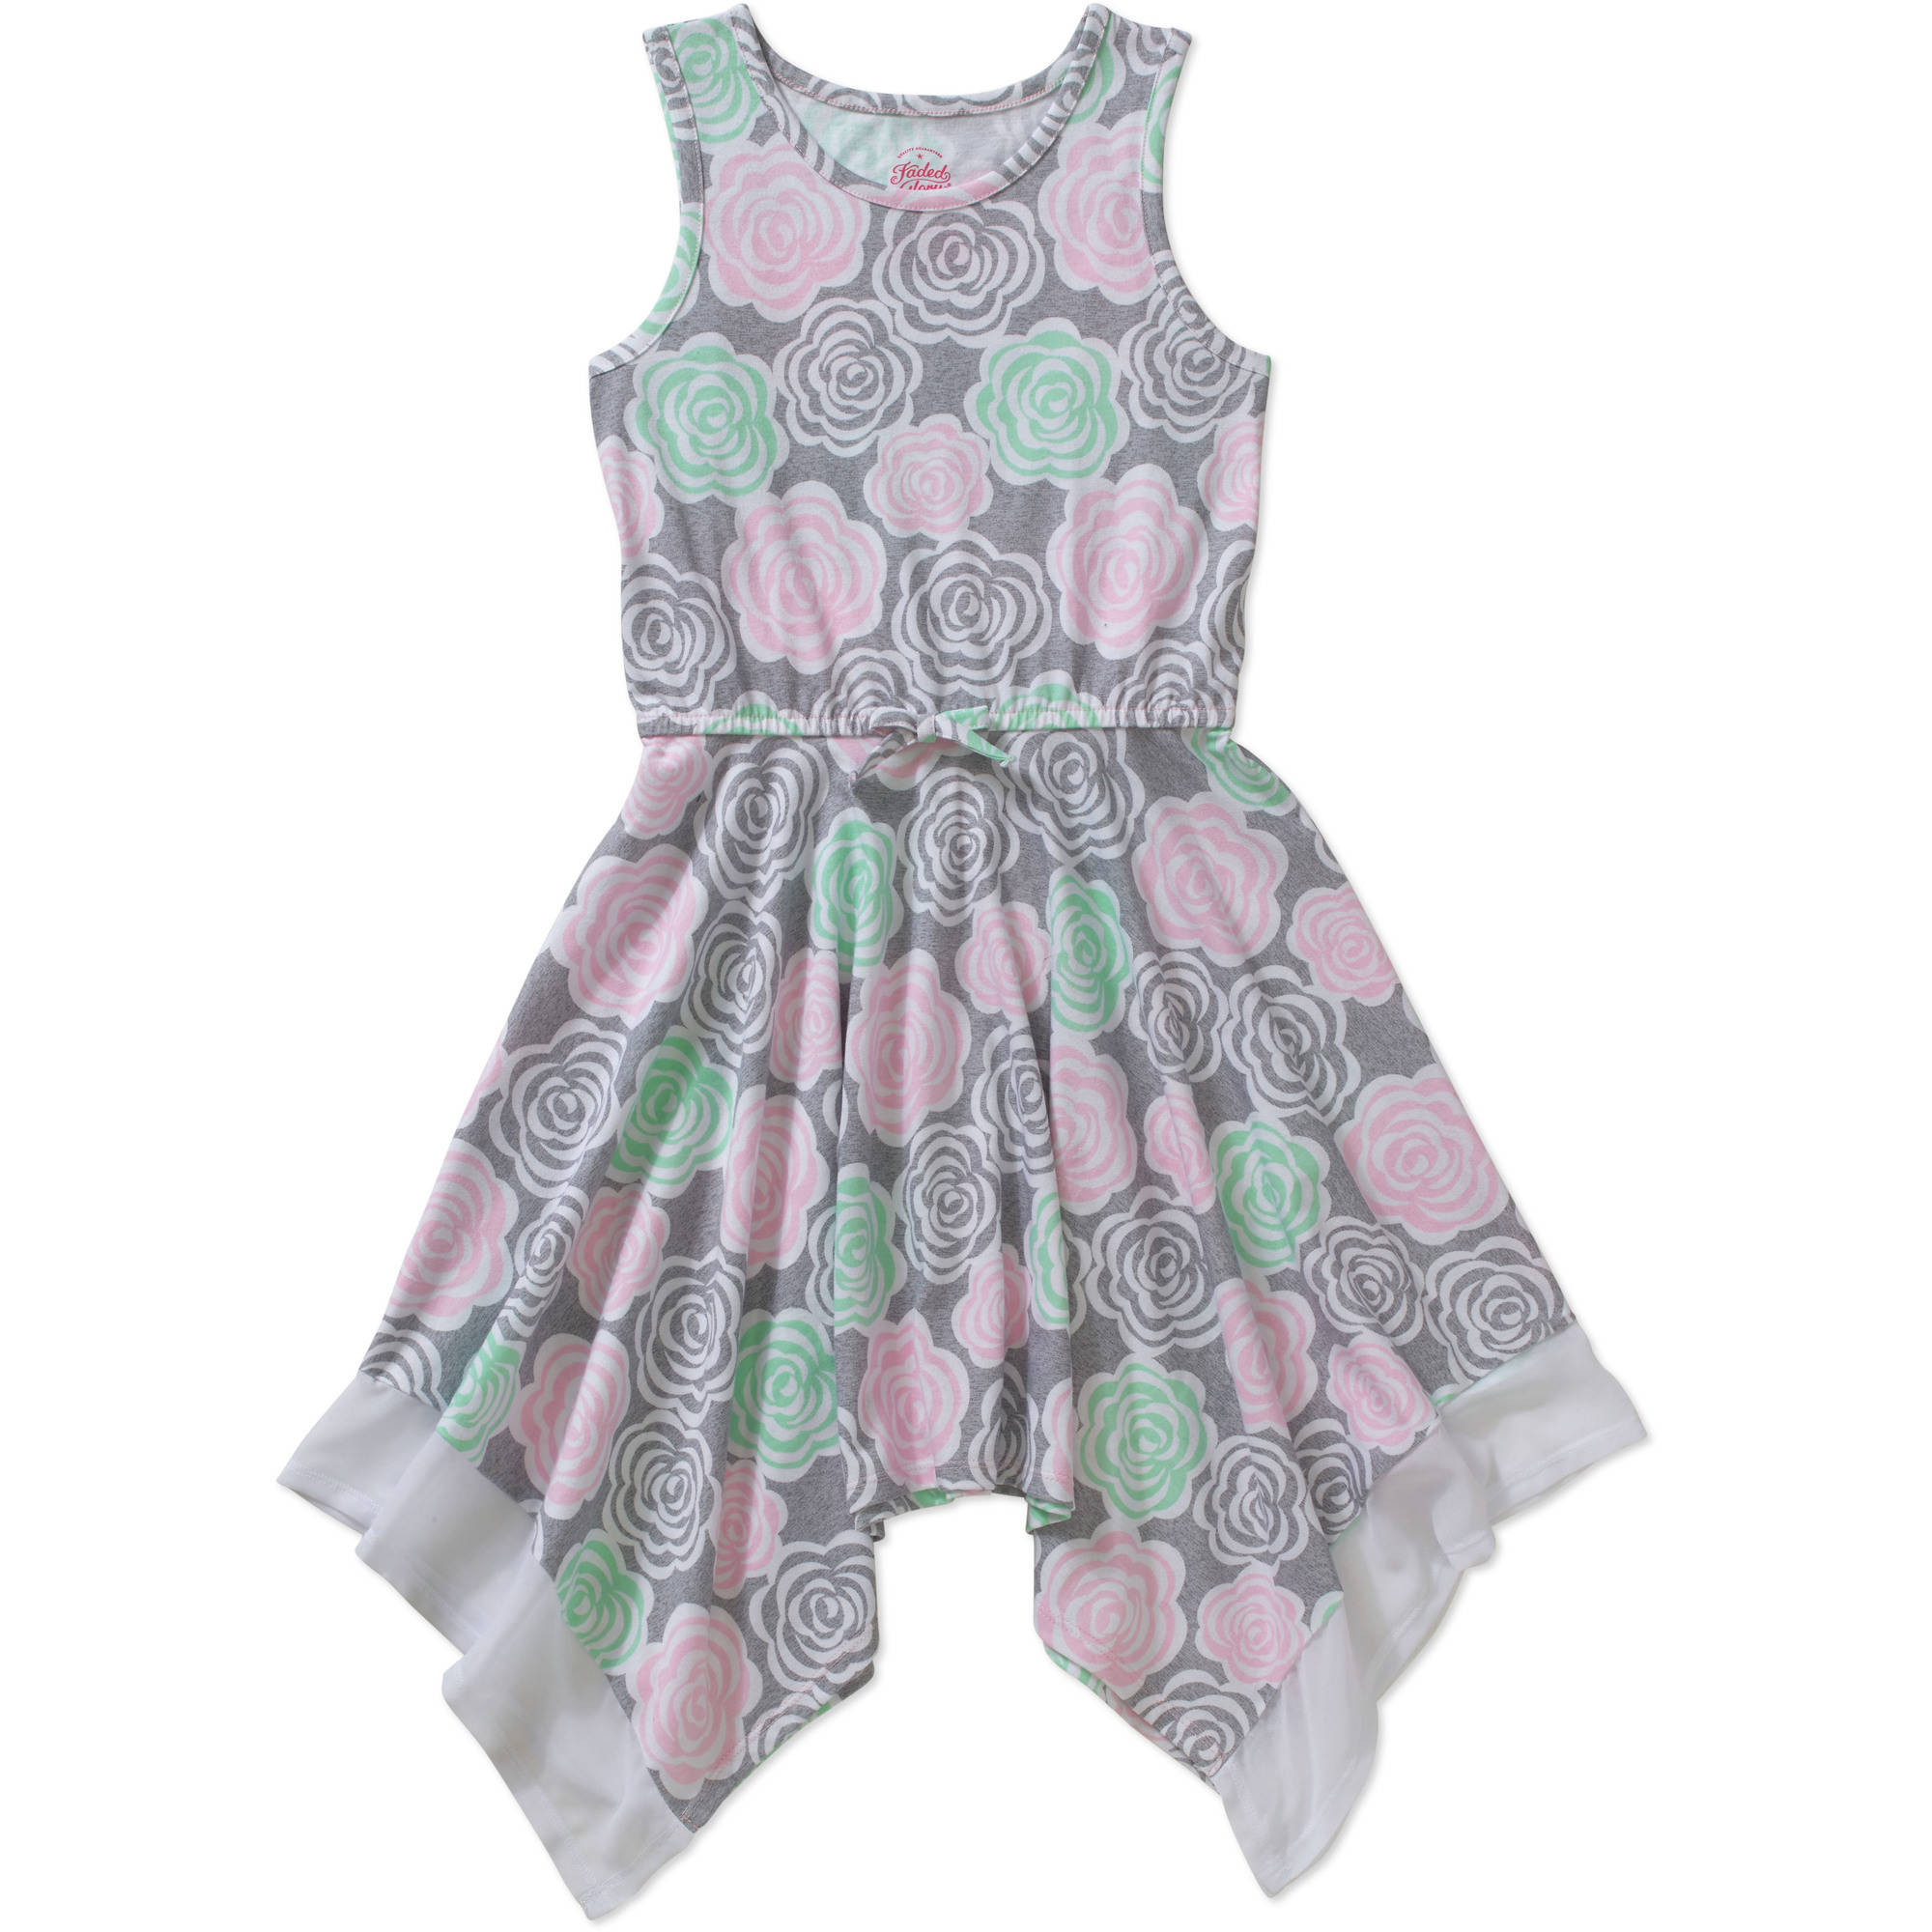 Faded Glory Girls' Hanky Dress